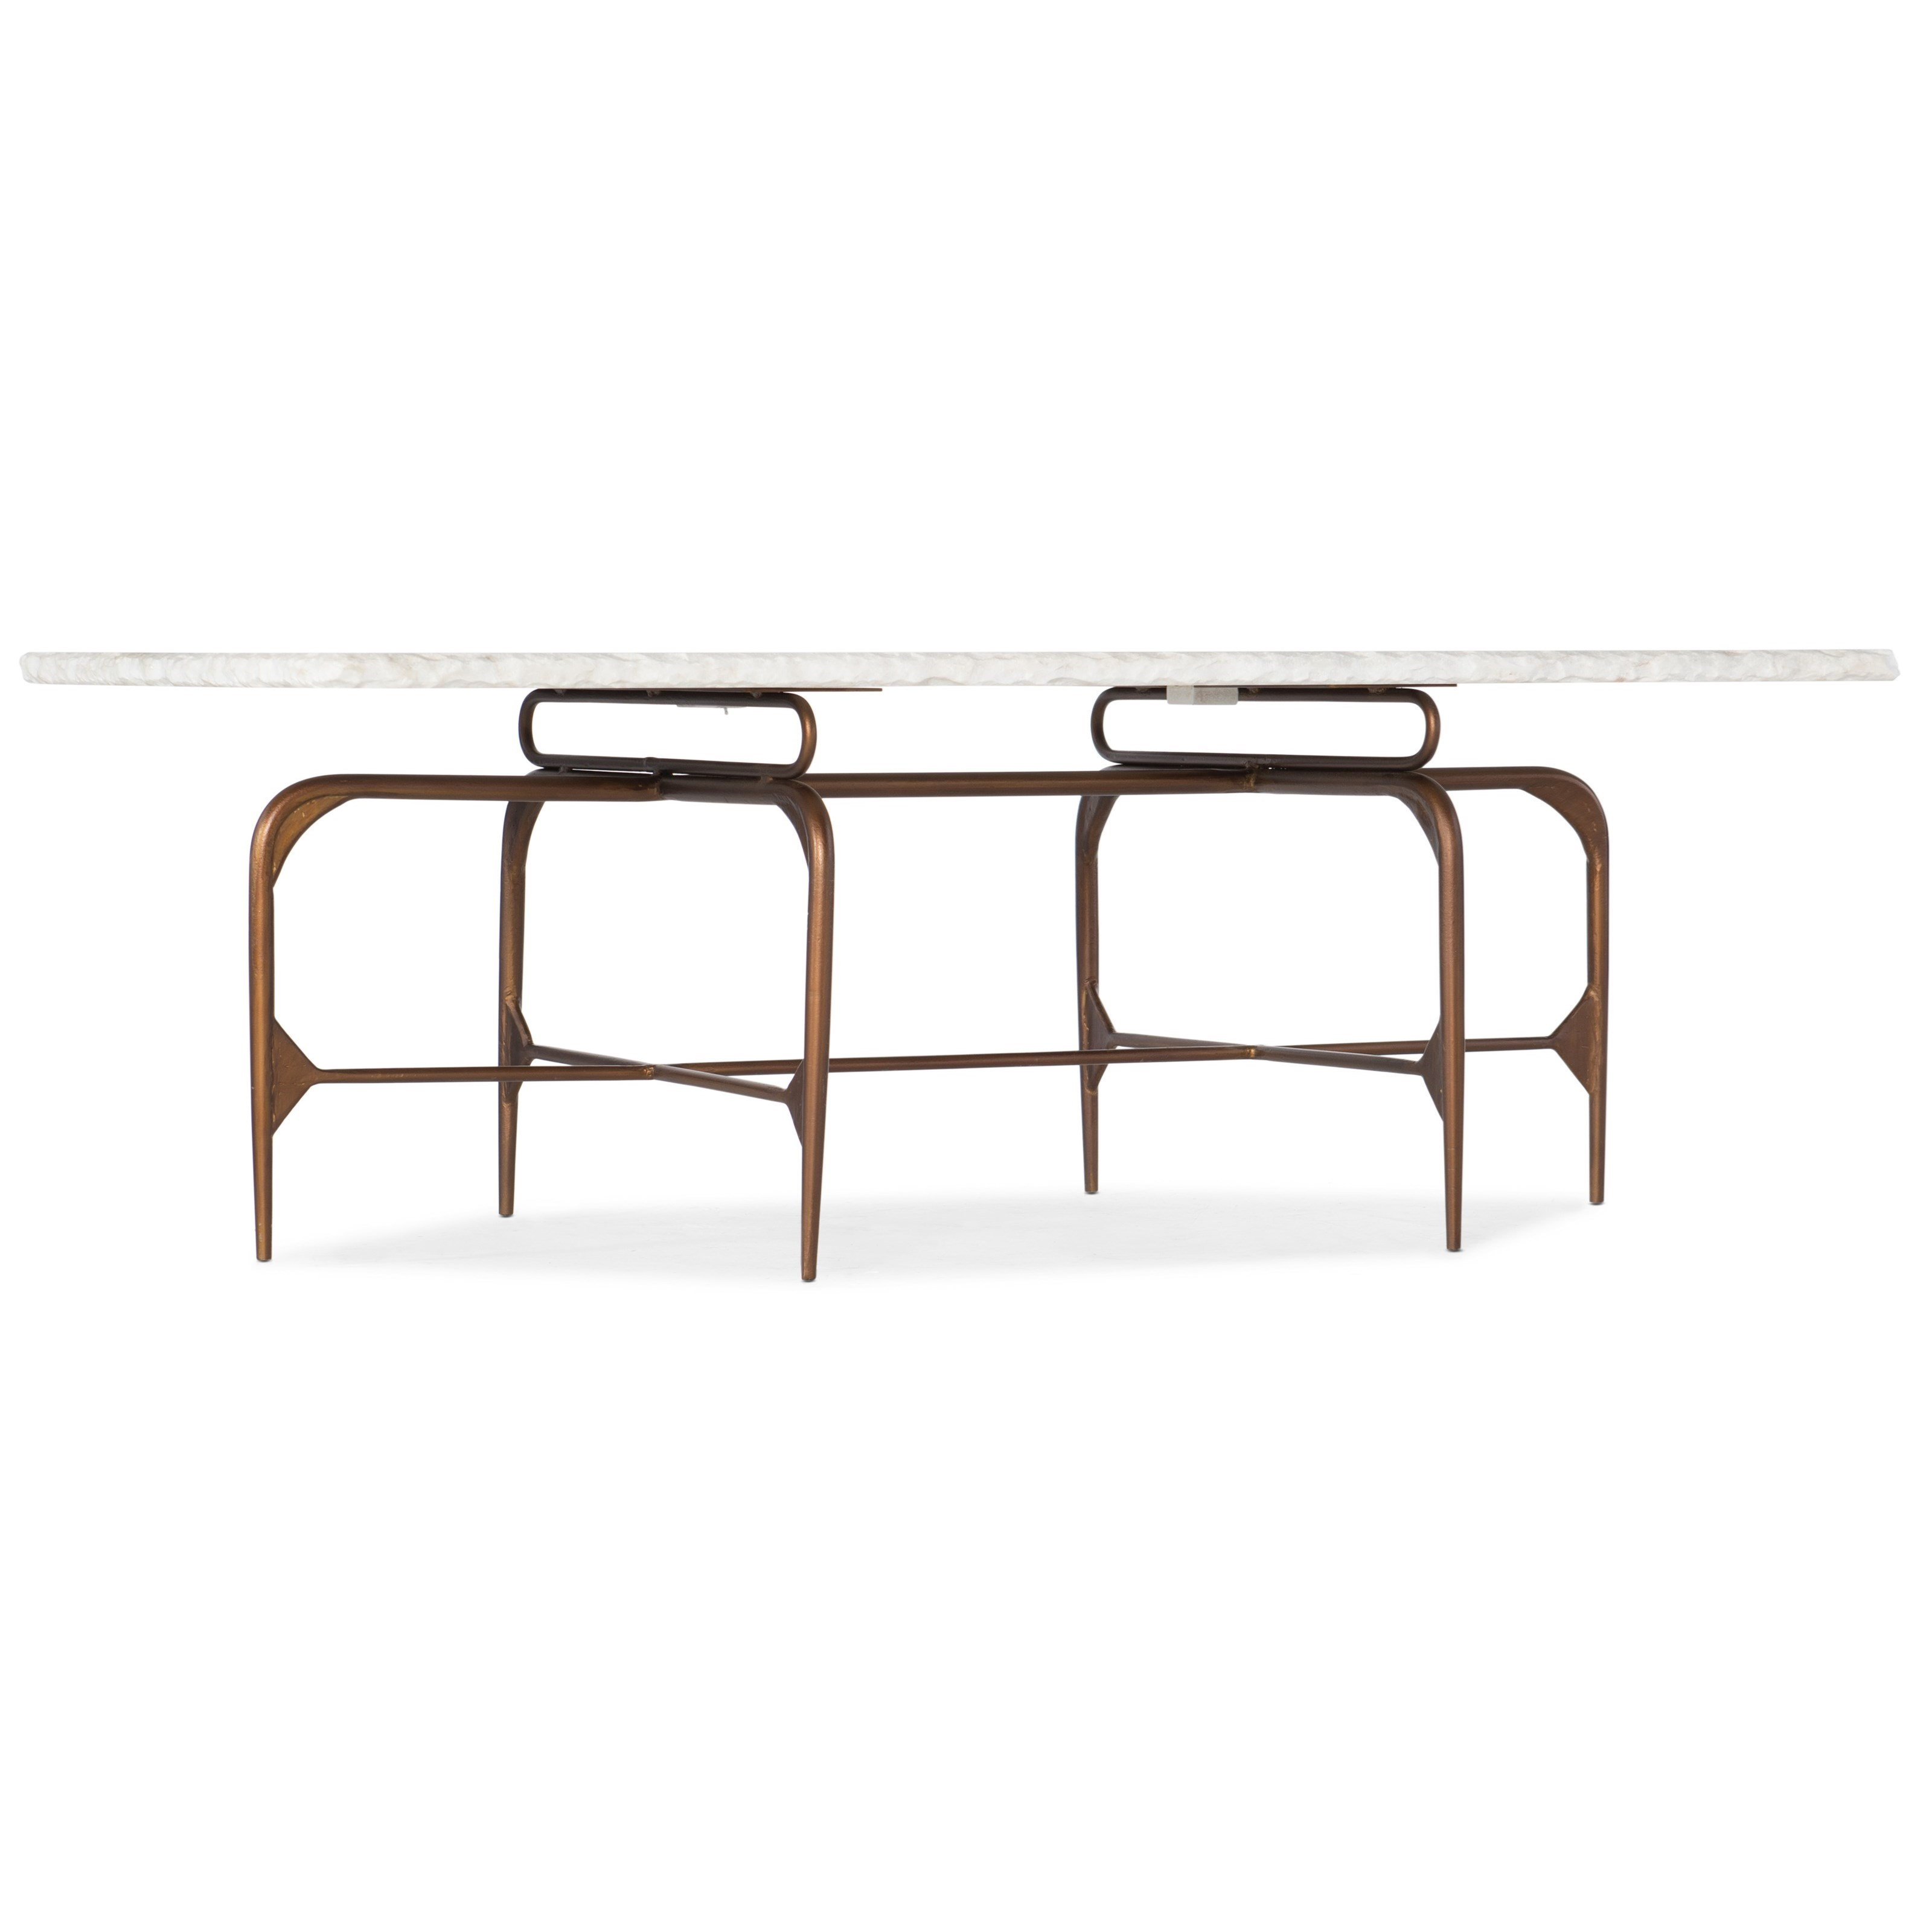 Hooker Furniture 5633-80 Skinny Rectangle Cocktail Table - Item Number: 5633-80110-WH